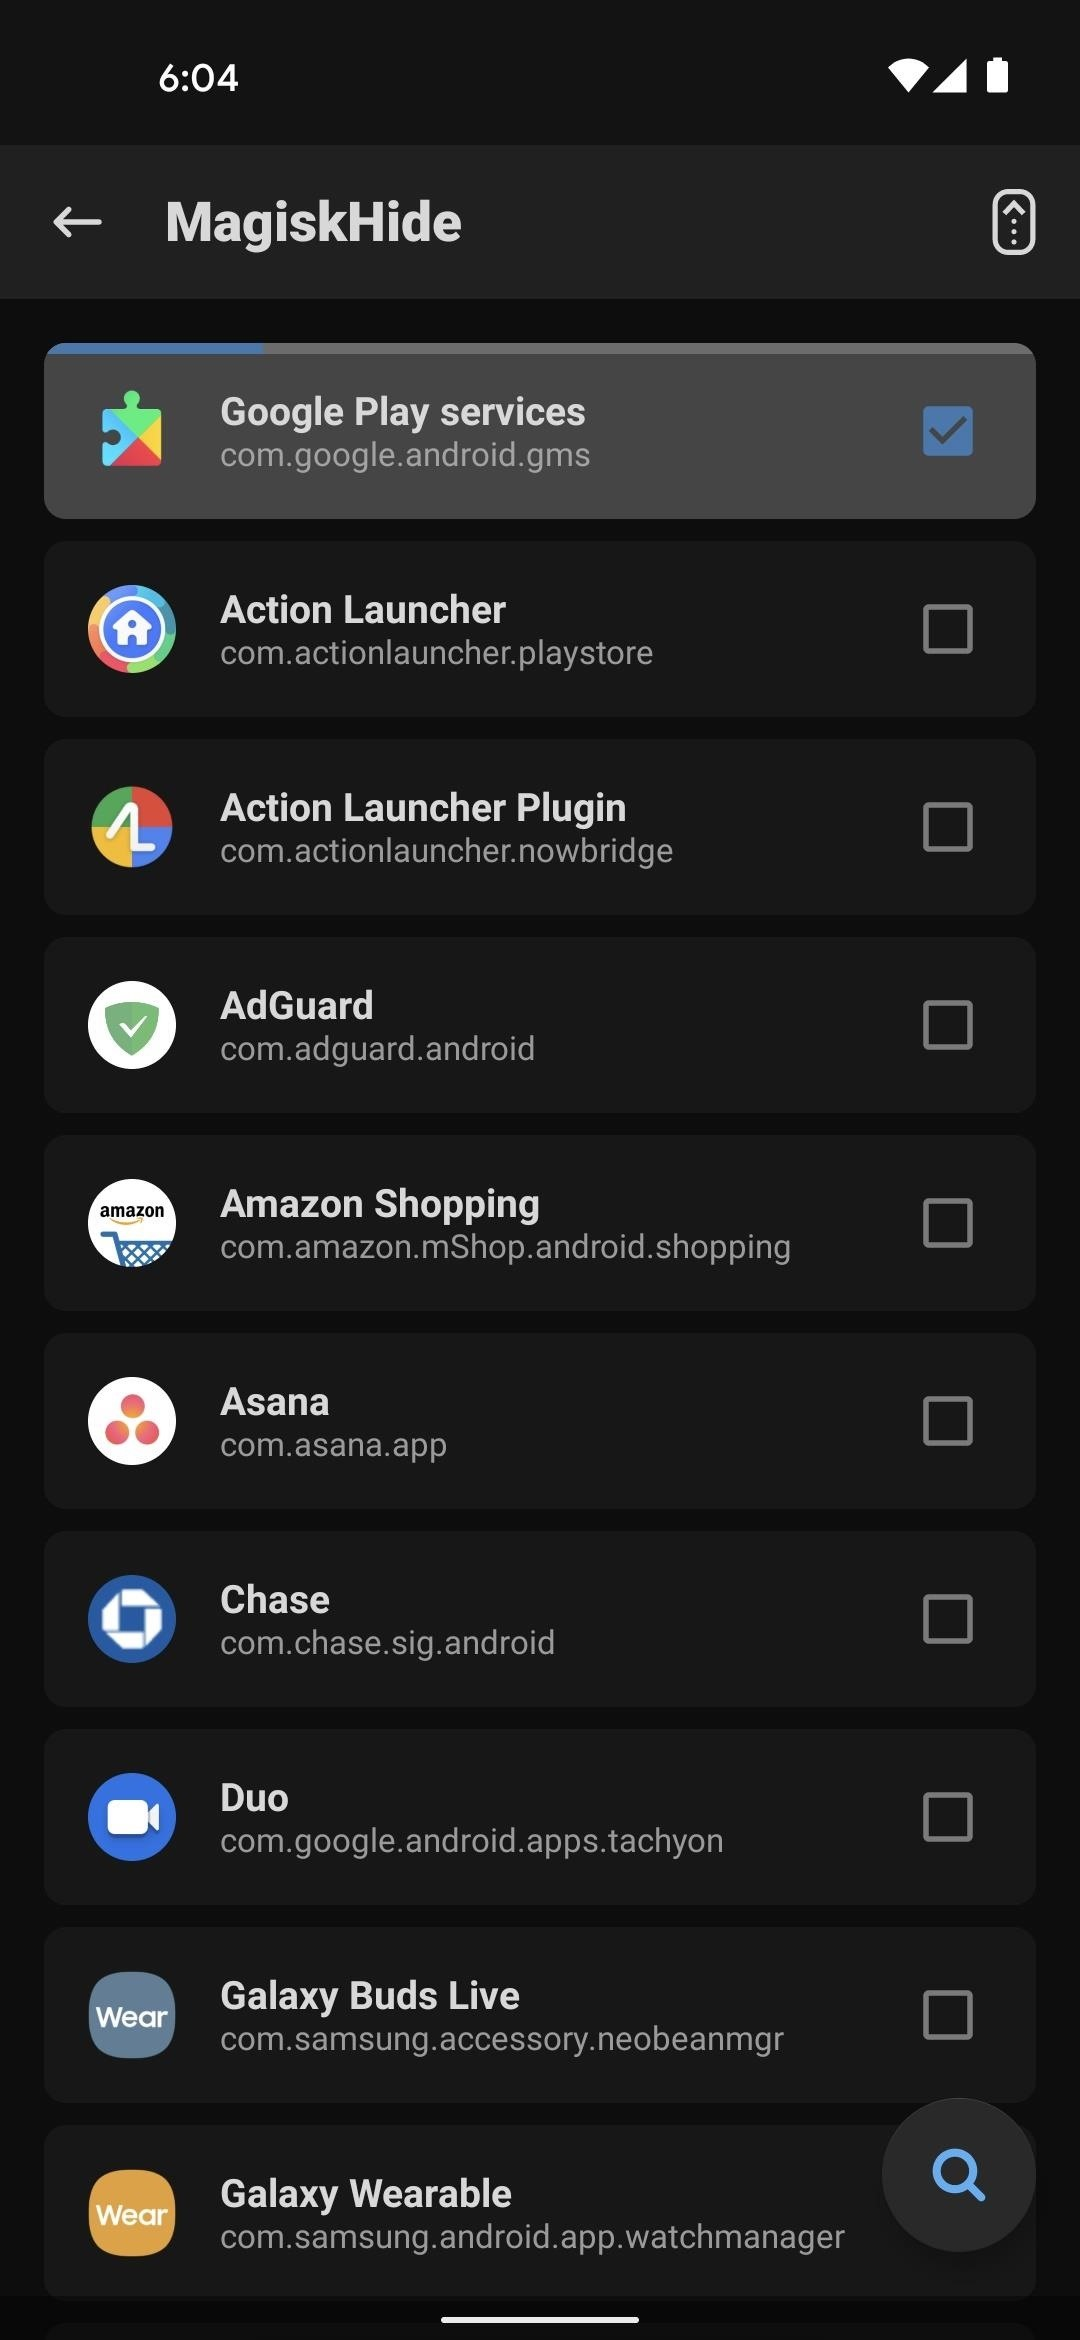 How to Root the Pixel 5 & Still Pass SafetyNet — Full Guide for Beginners & Advanced Users Alike